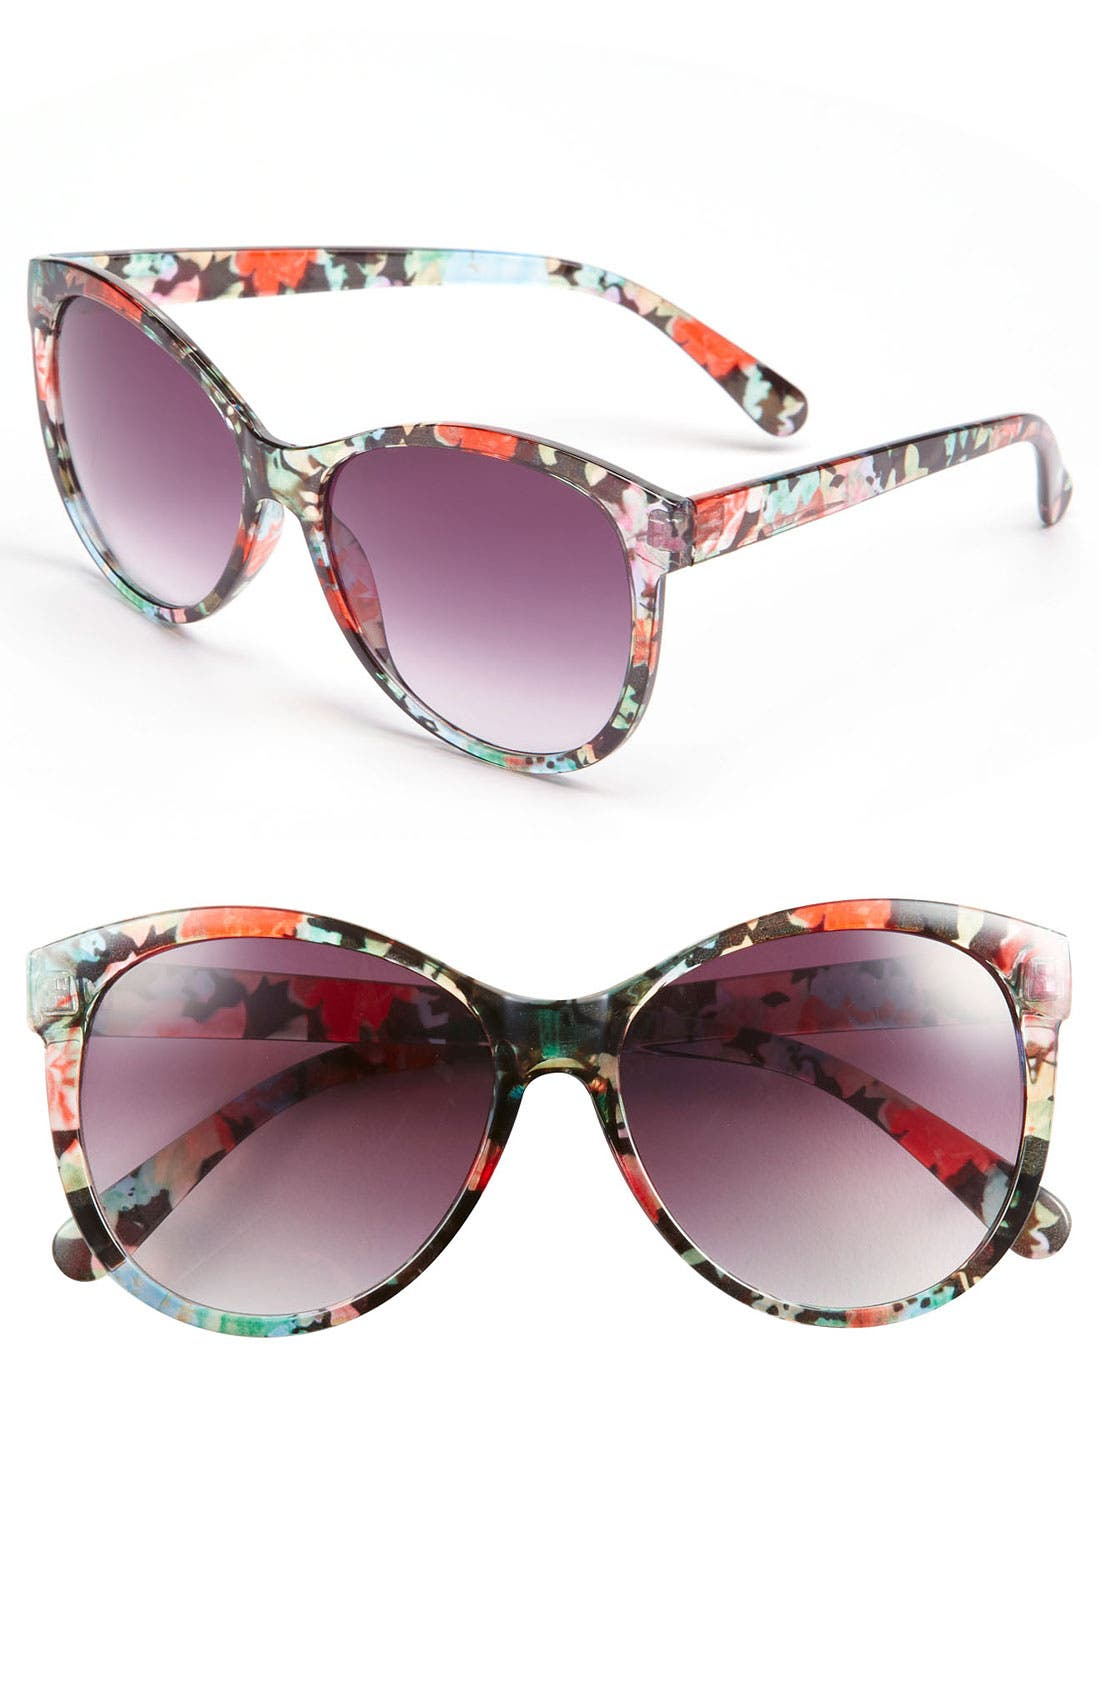 Main Image - FE NY 'Endless Summer' Sunglasses